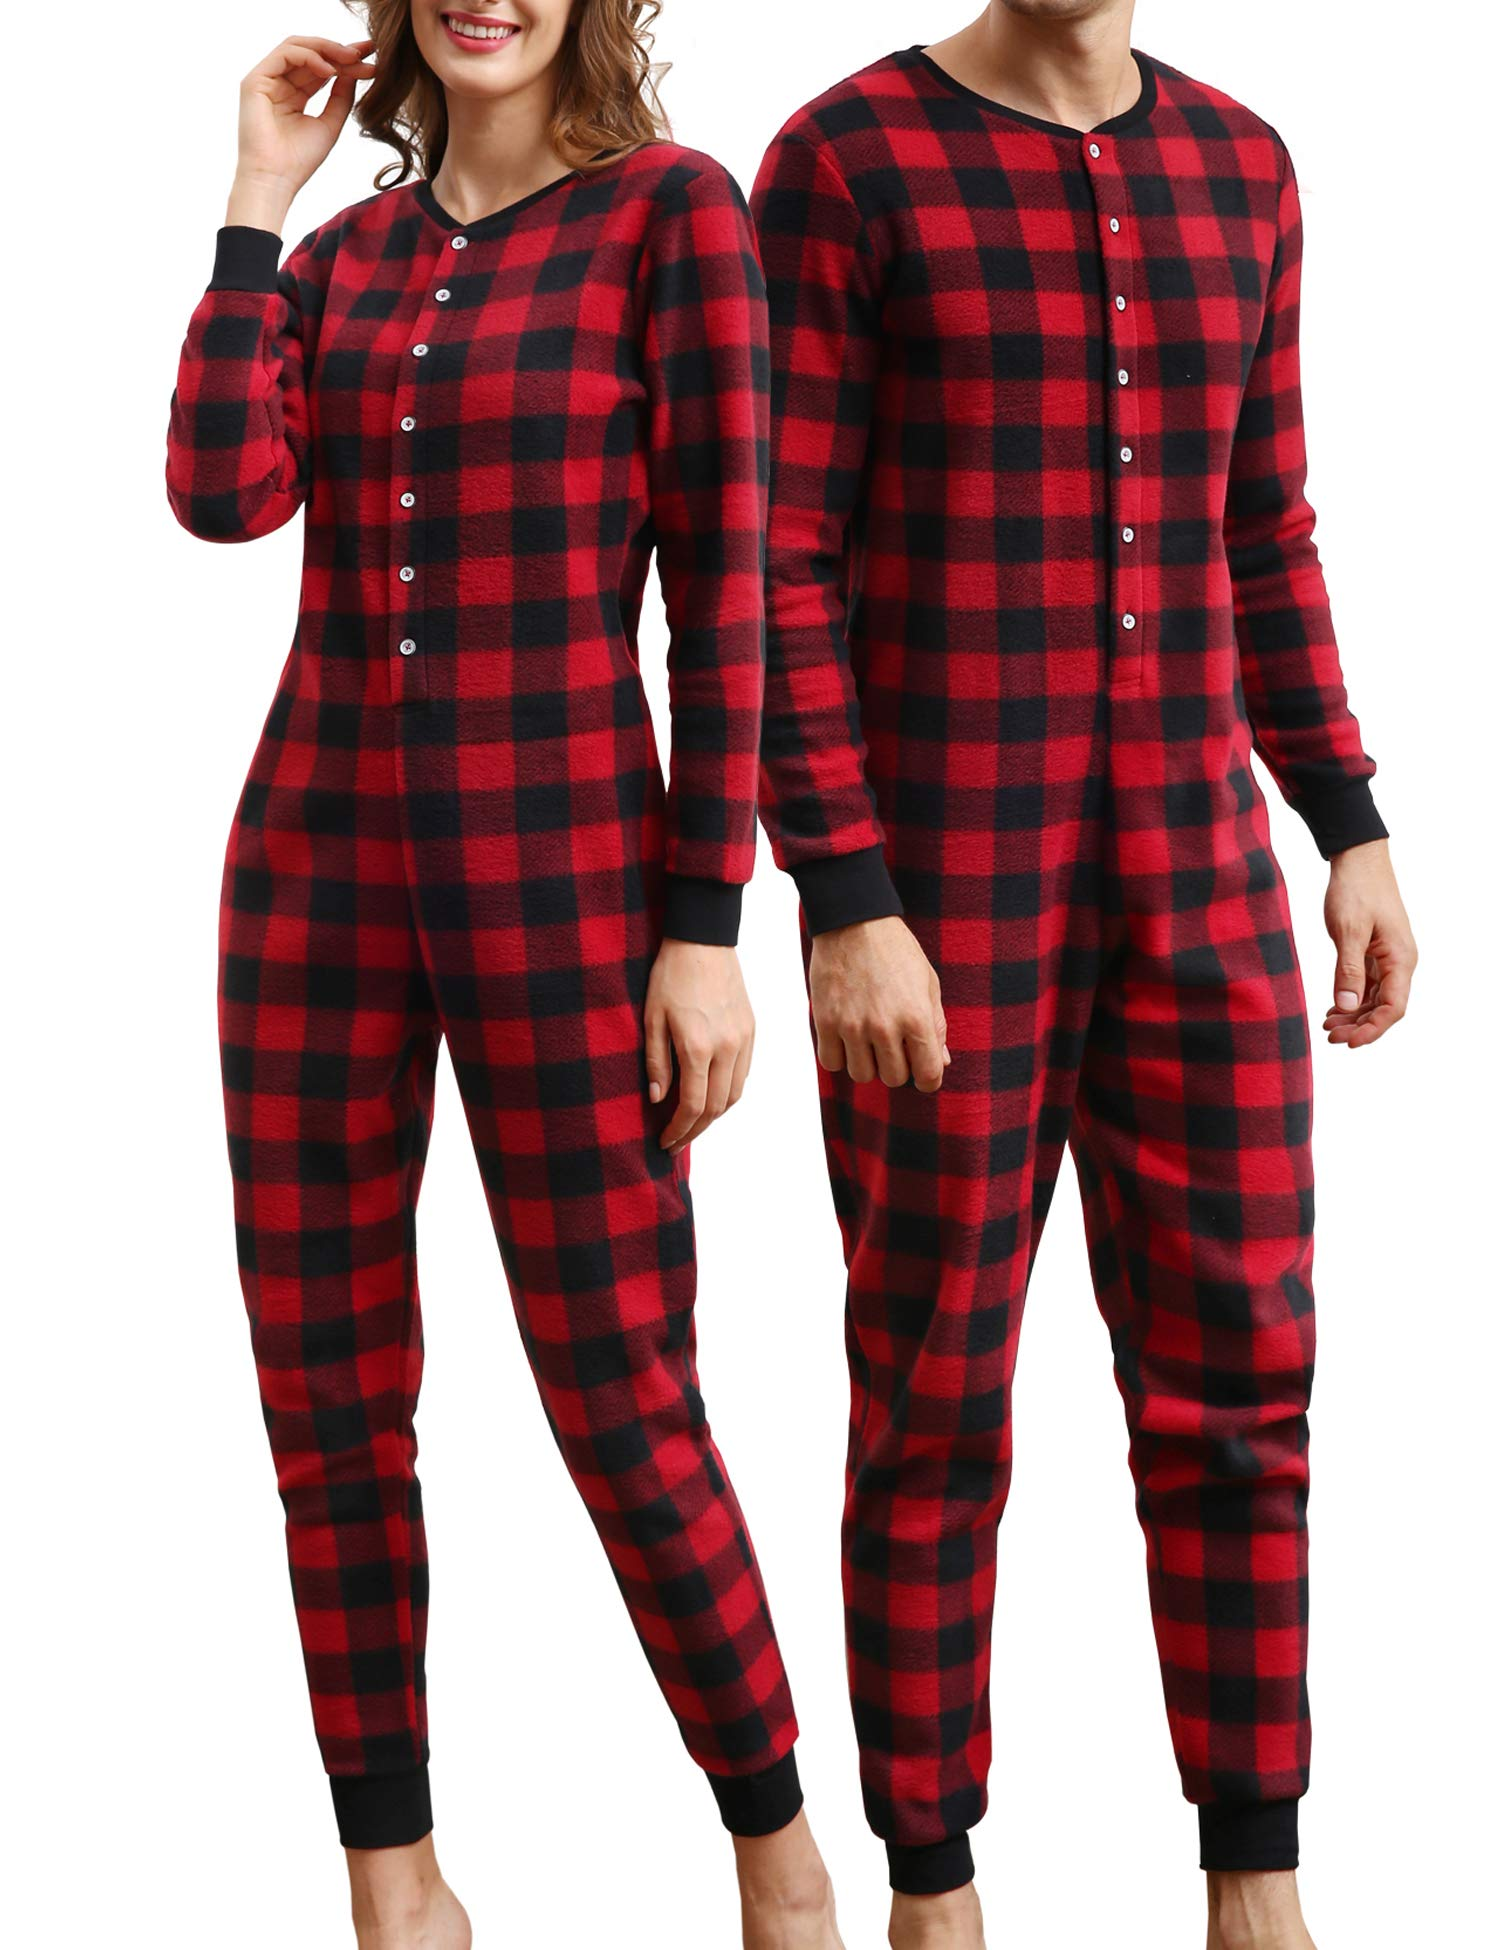 COLORFULLEAF Couples Christmas Matching One Piece Pajamas Plaid Fleece Adult Onesie (Pack of 1)